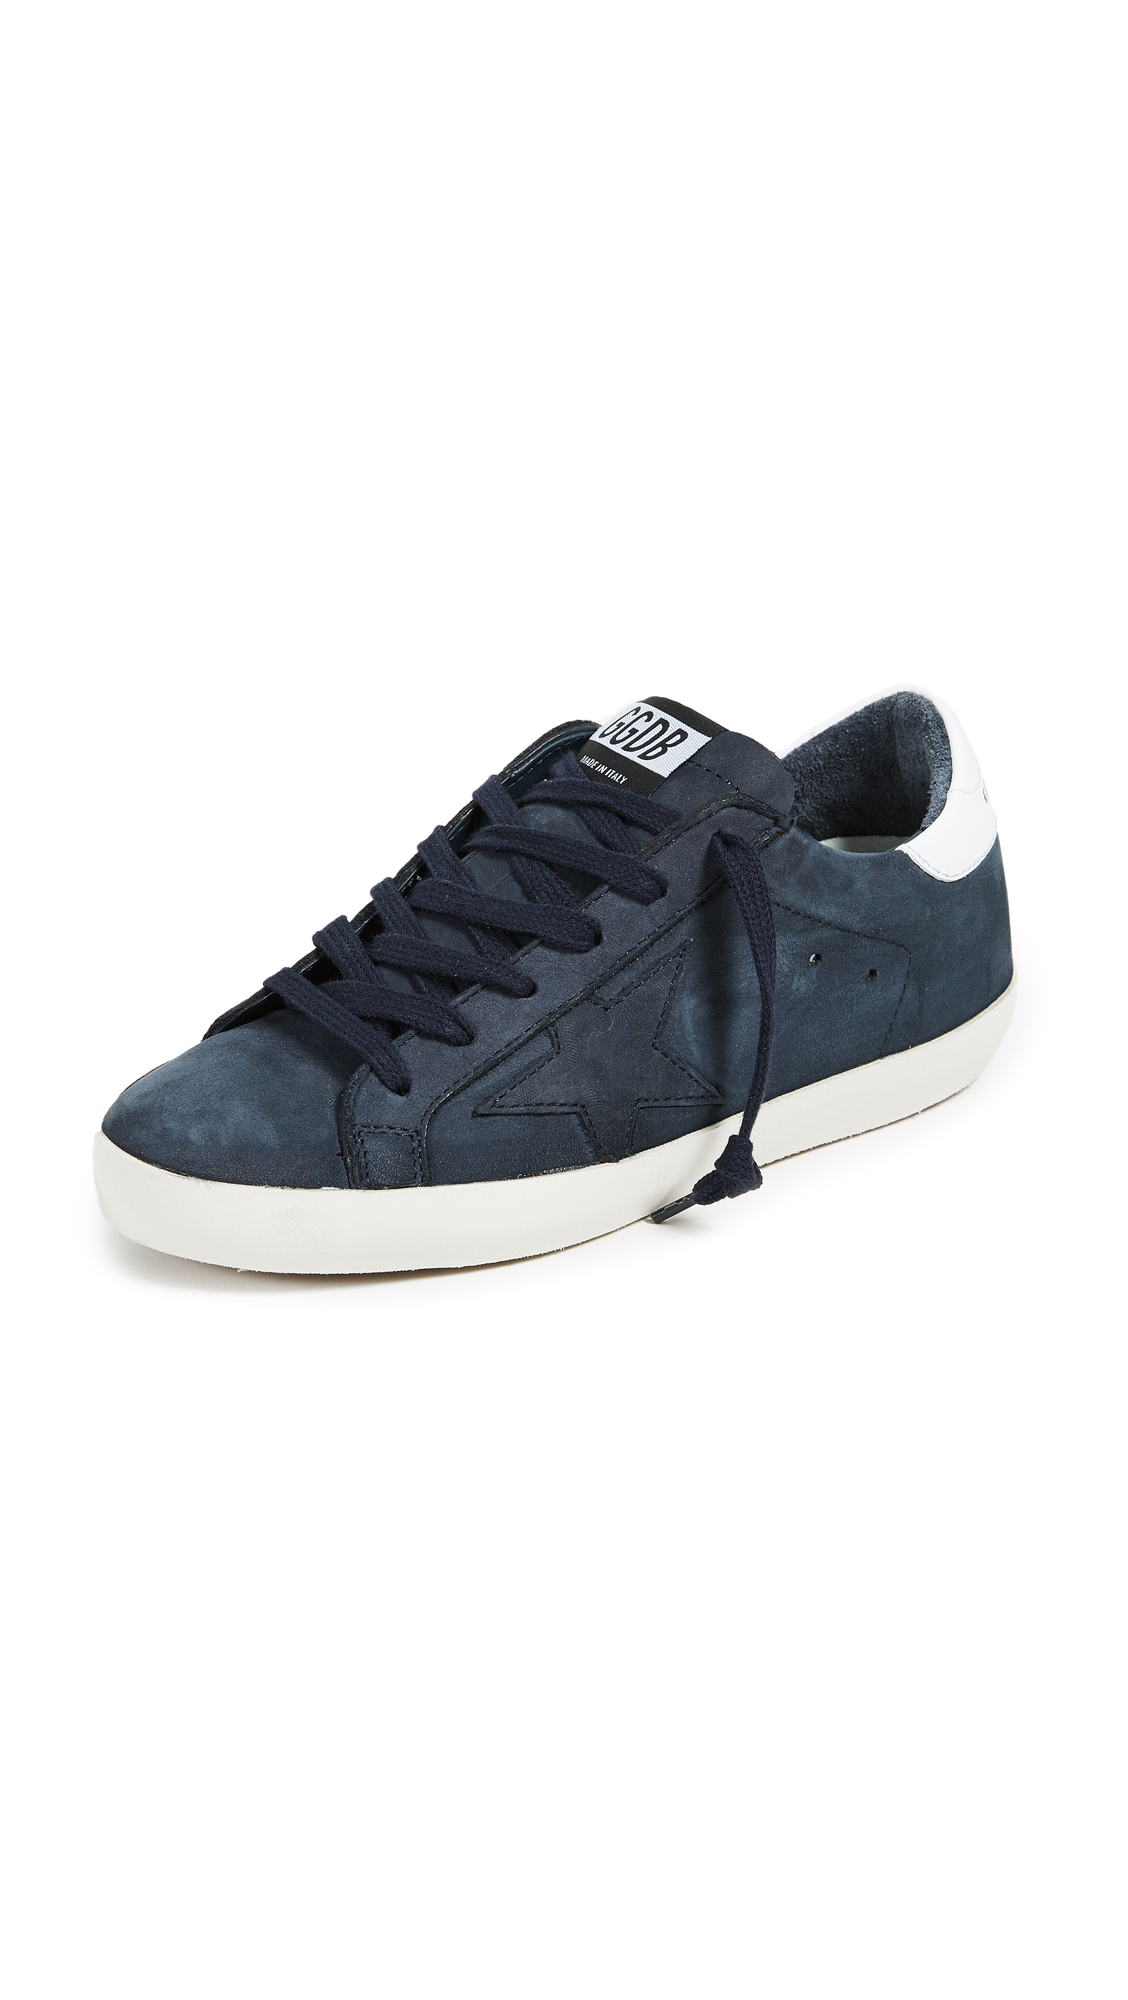 Golden Goose Superstar Sneakers - Blue/Gold